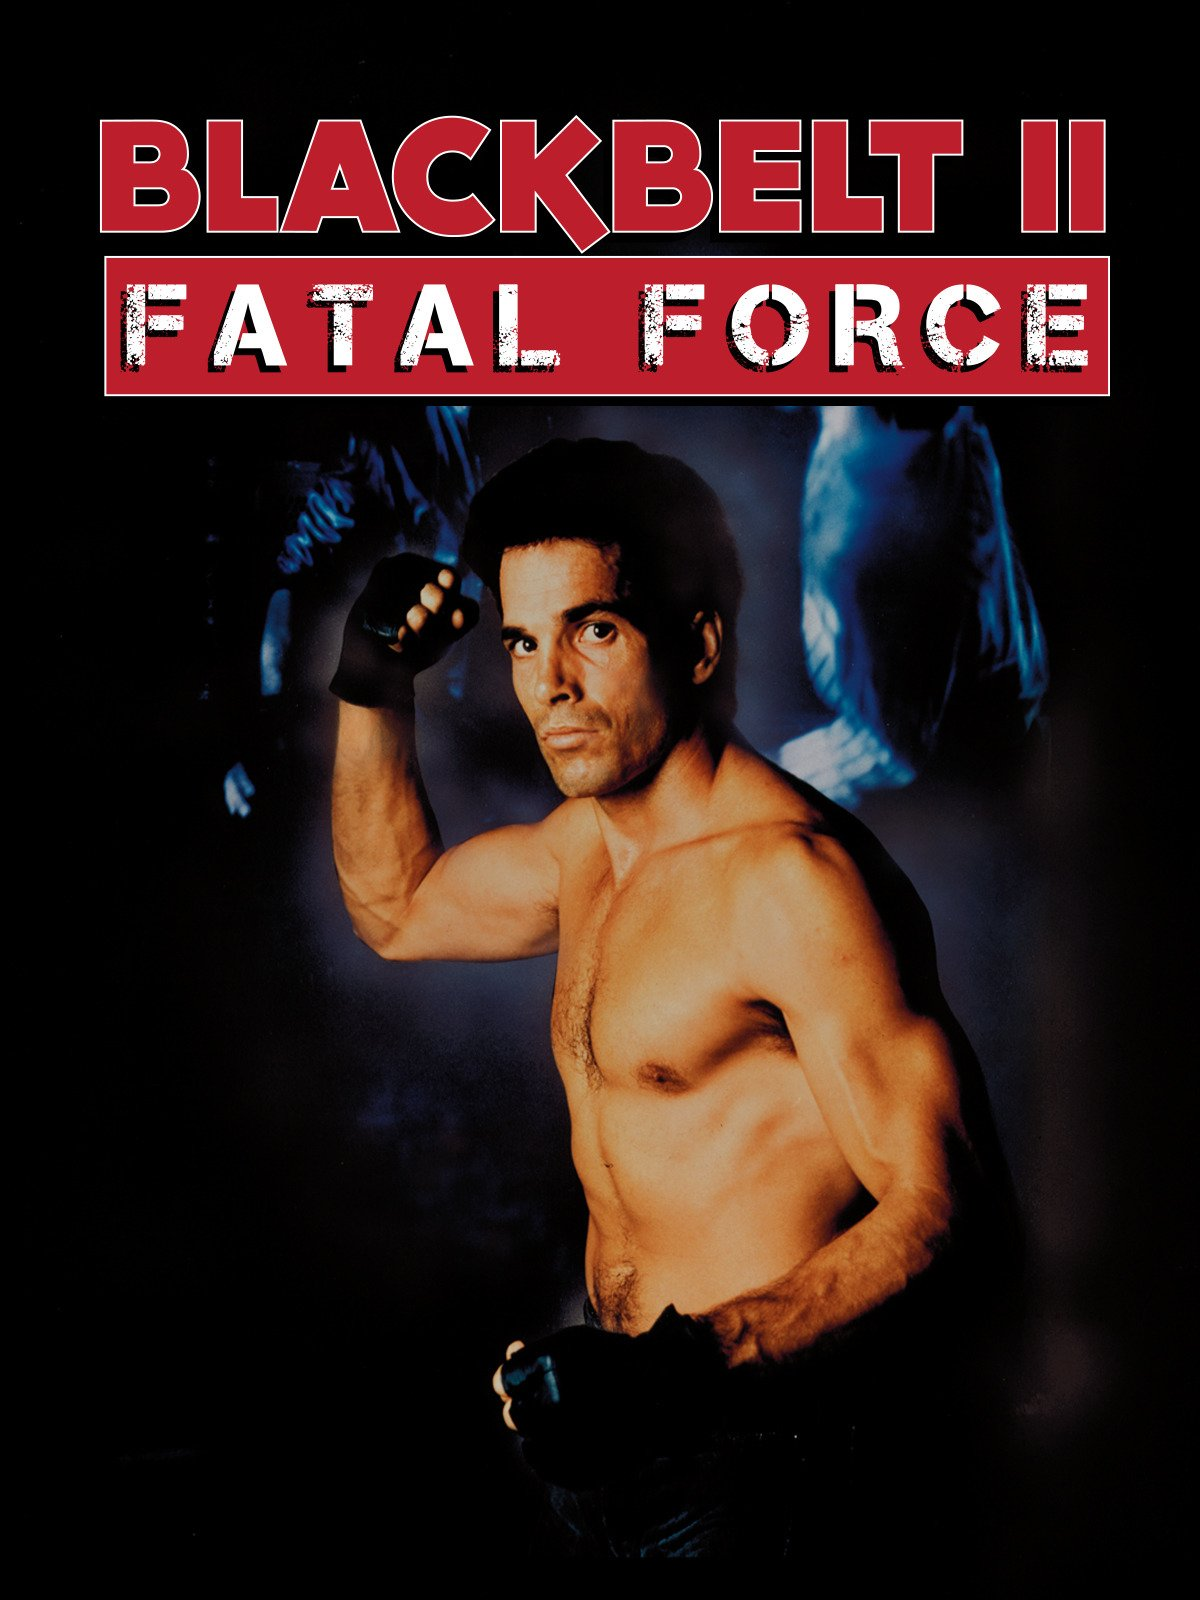 Blackbelt II: Fatal Force